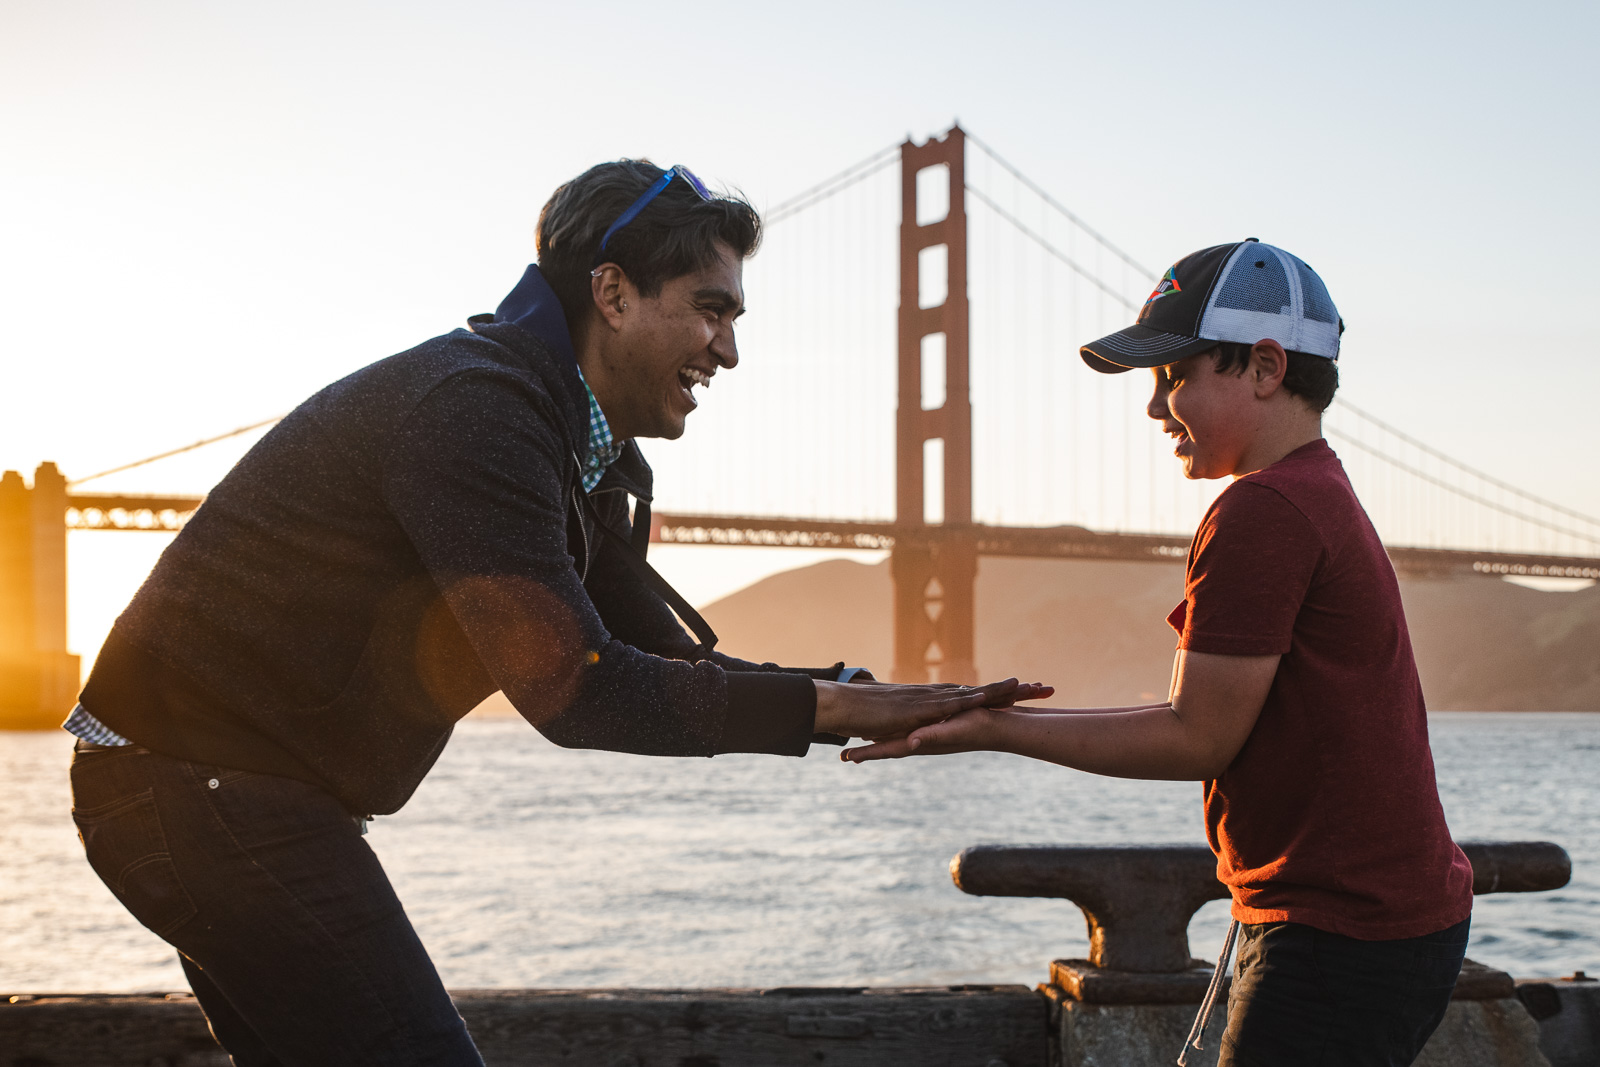 A man and young boy play slaps in front of the Golden Gate Bridge in San Francisco, CA